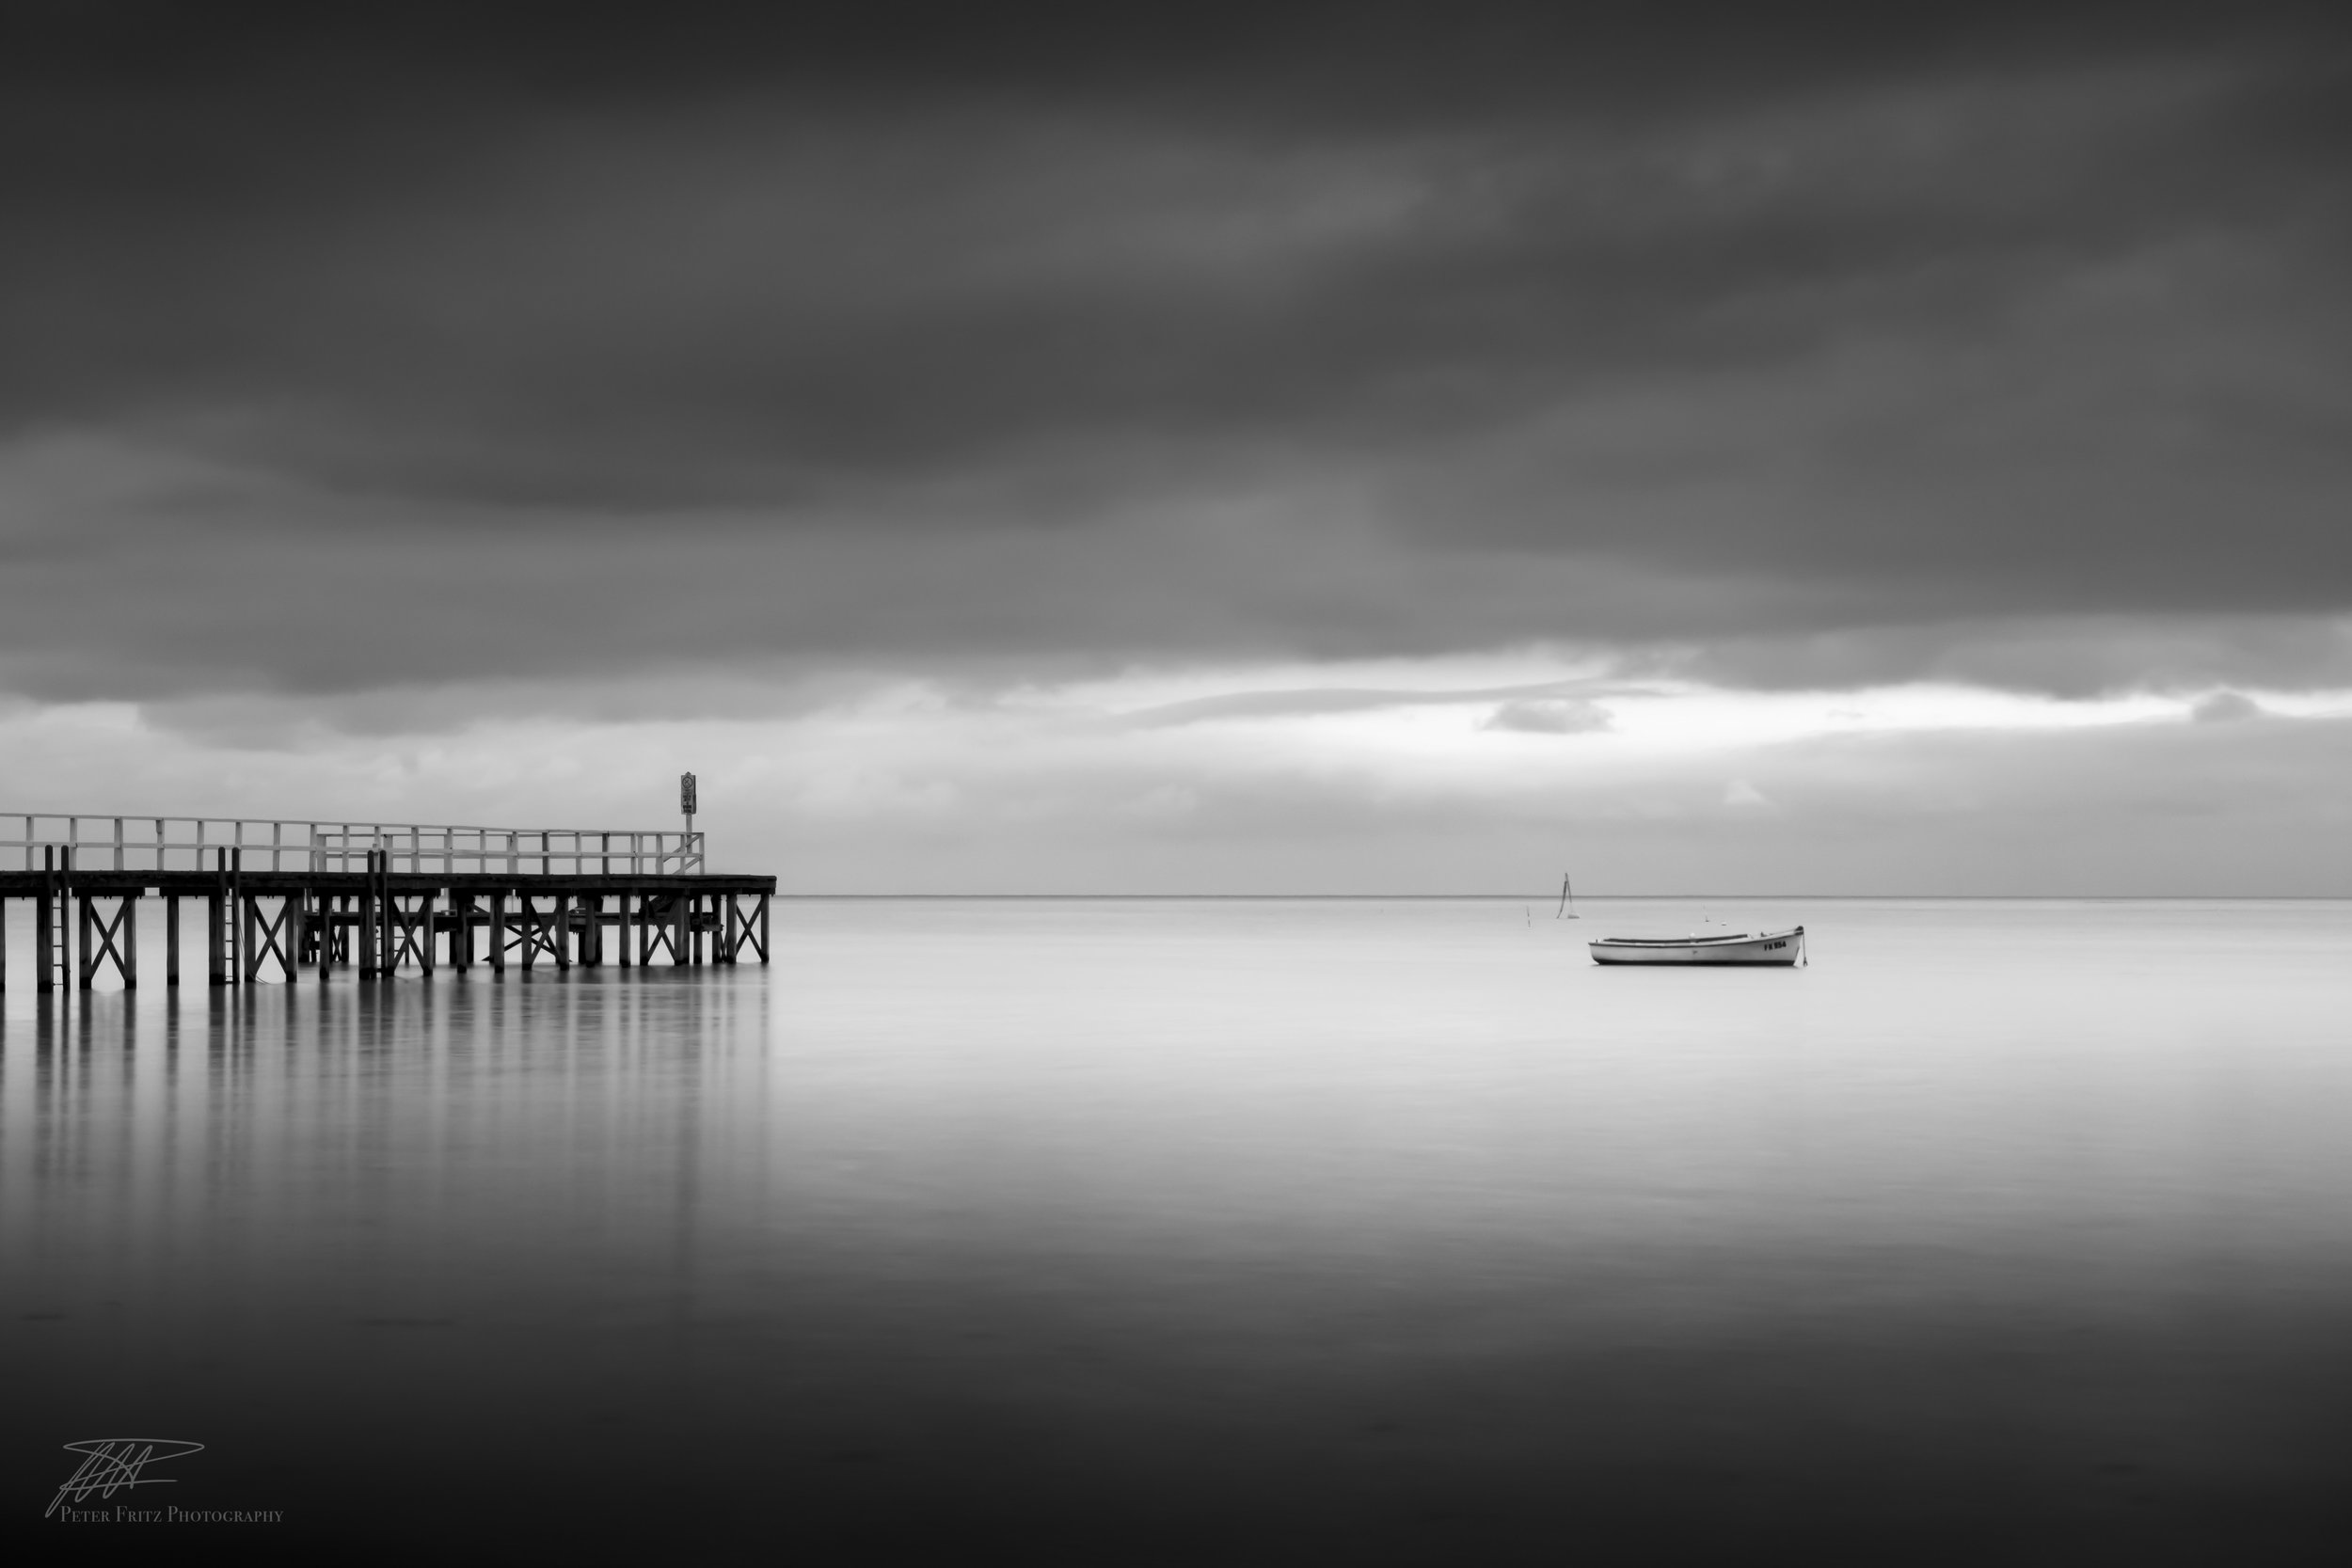 Jetty and Boat 3x2.jpg